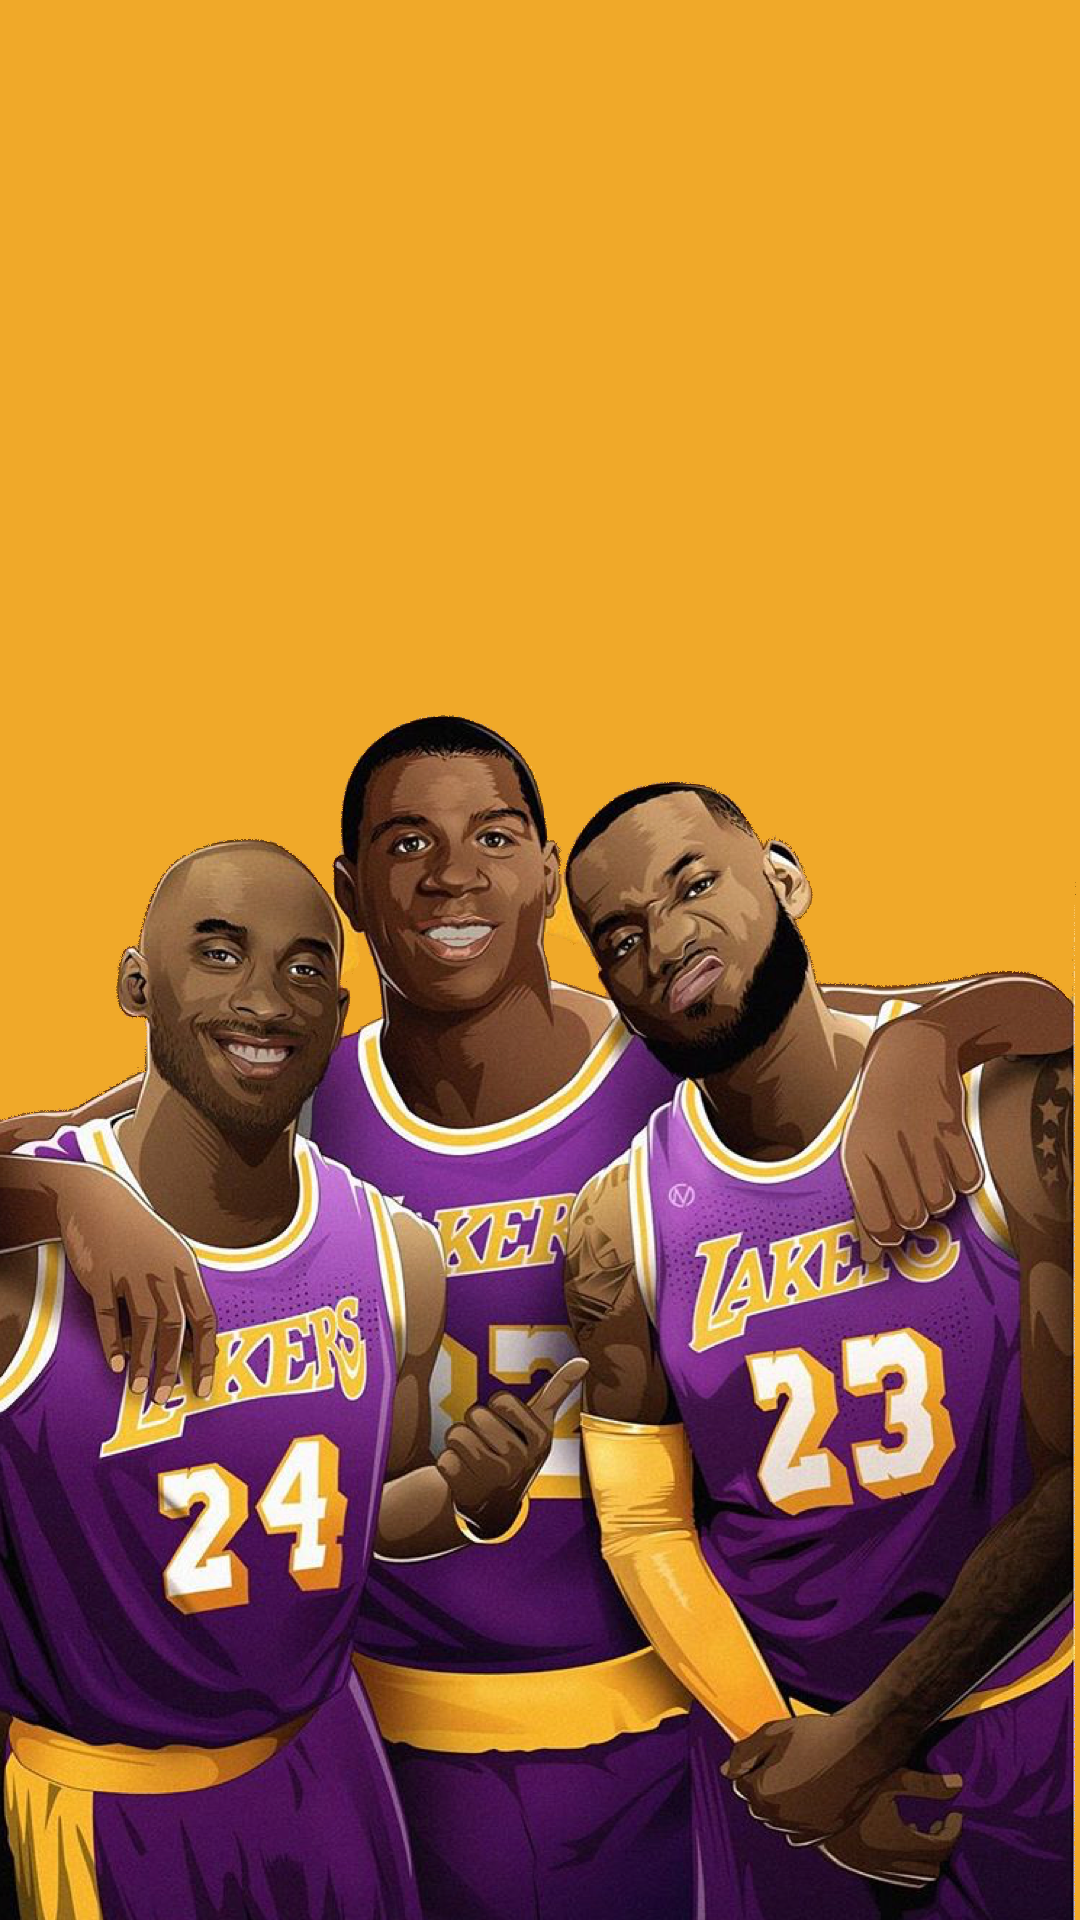 1080x1920 Awesome Mobile Wallpaper. : lakers